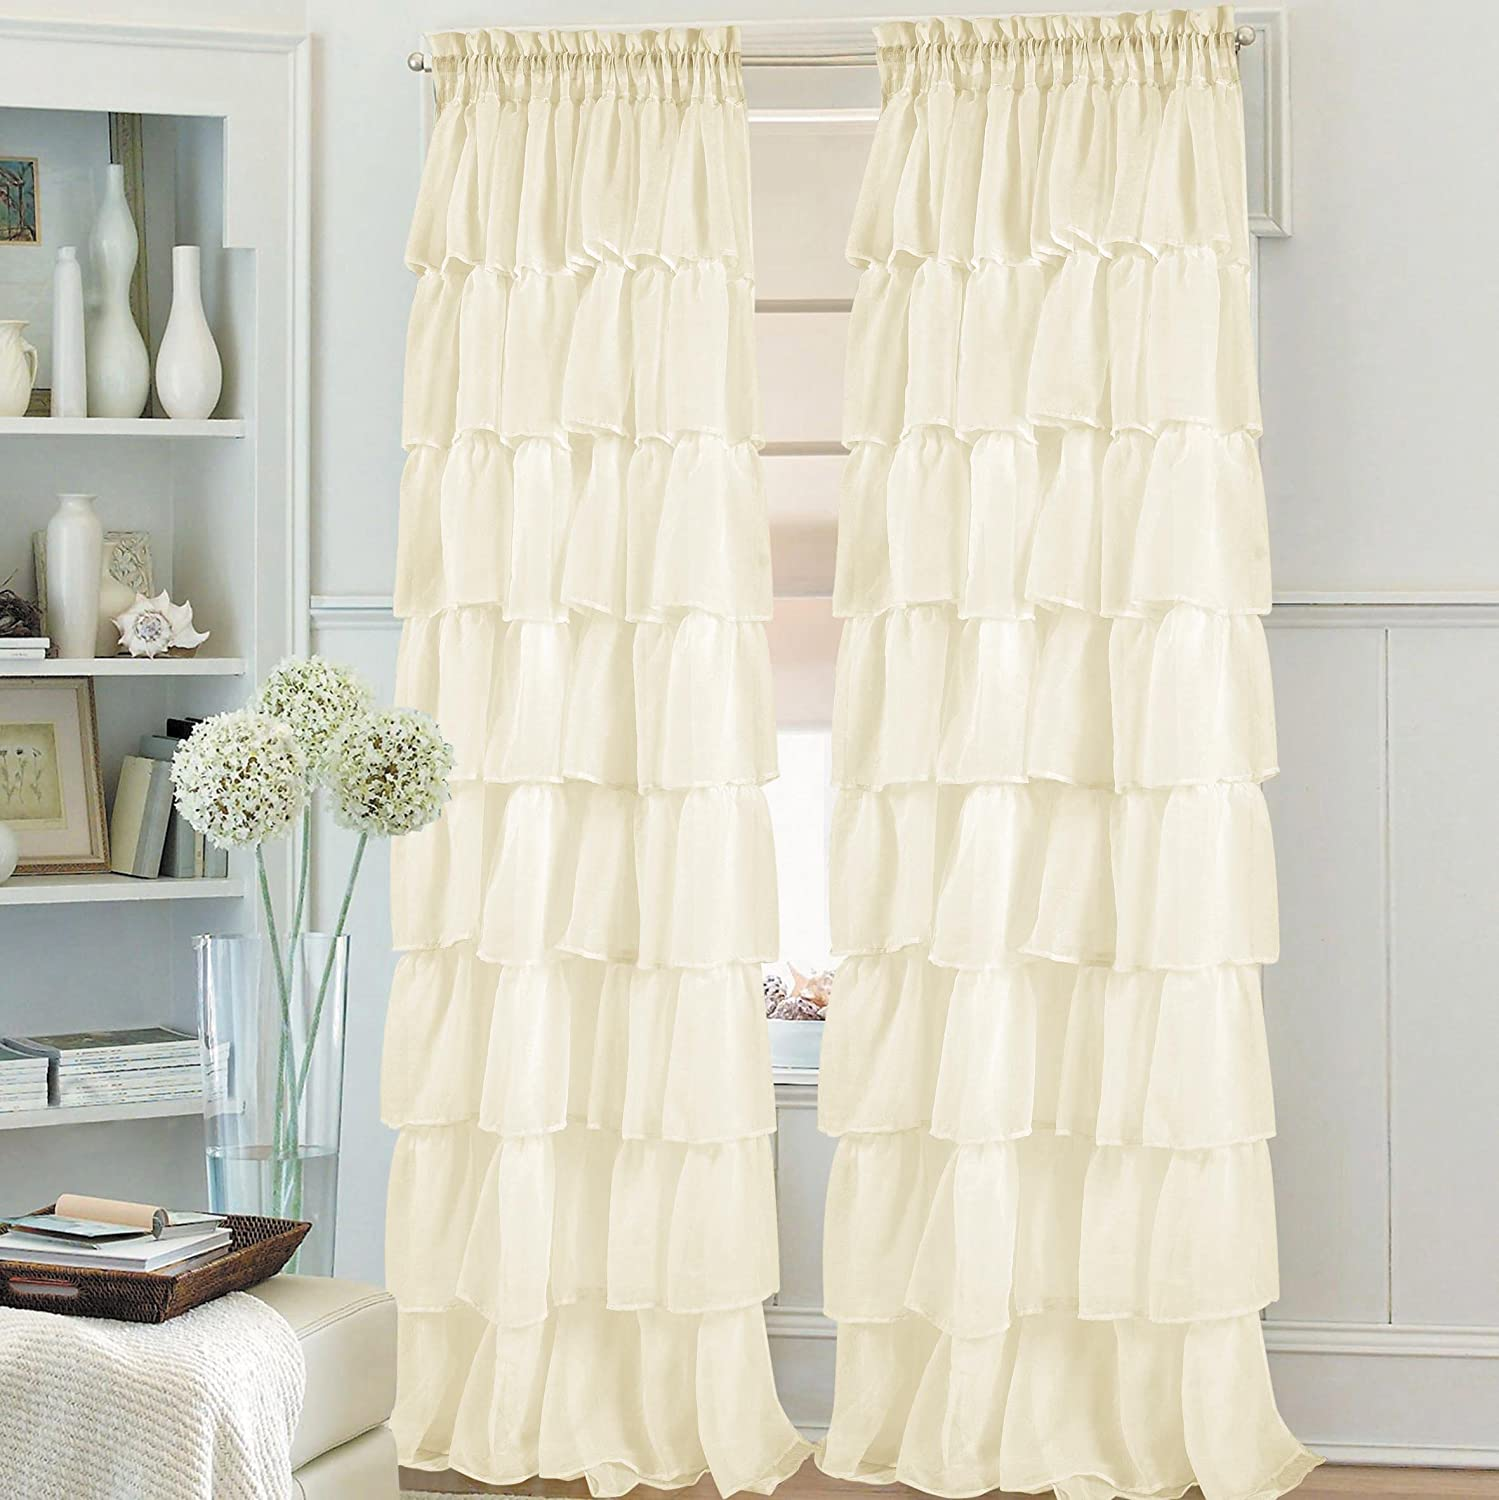 Jody Clarke 1PC Gypsy Window Treatment Curtain Crushed Sheer Panel Drape Ruffle Style Semi-Sheer Fully Stitched with Rod Pocket for Avilabale in Multiple Colors and Size (55